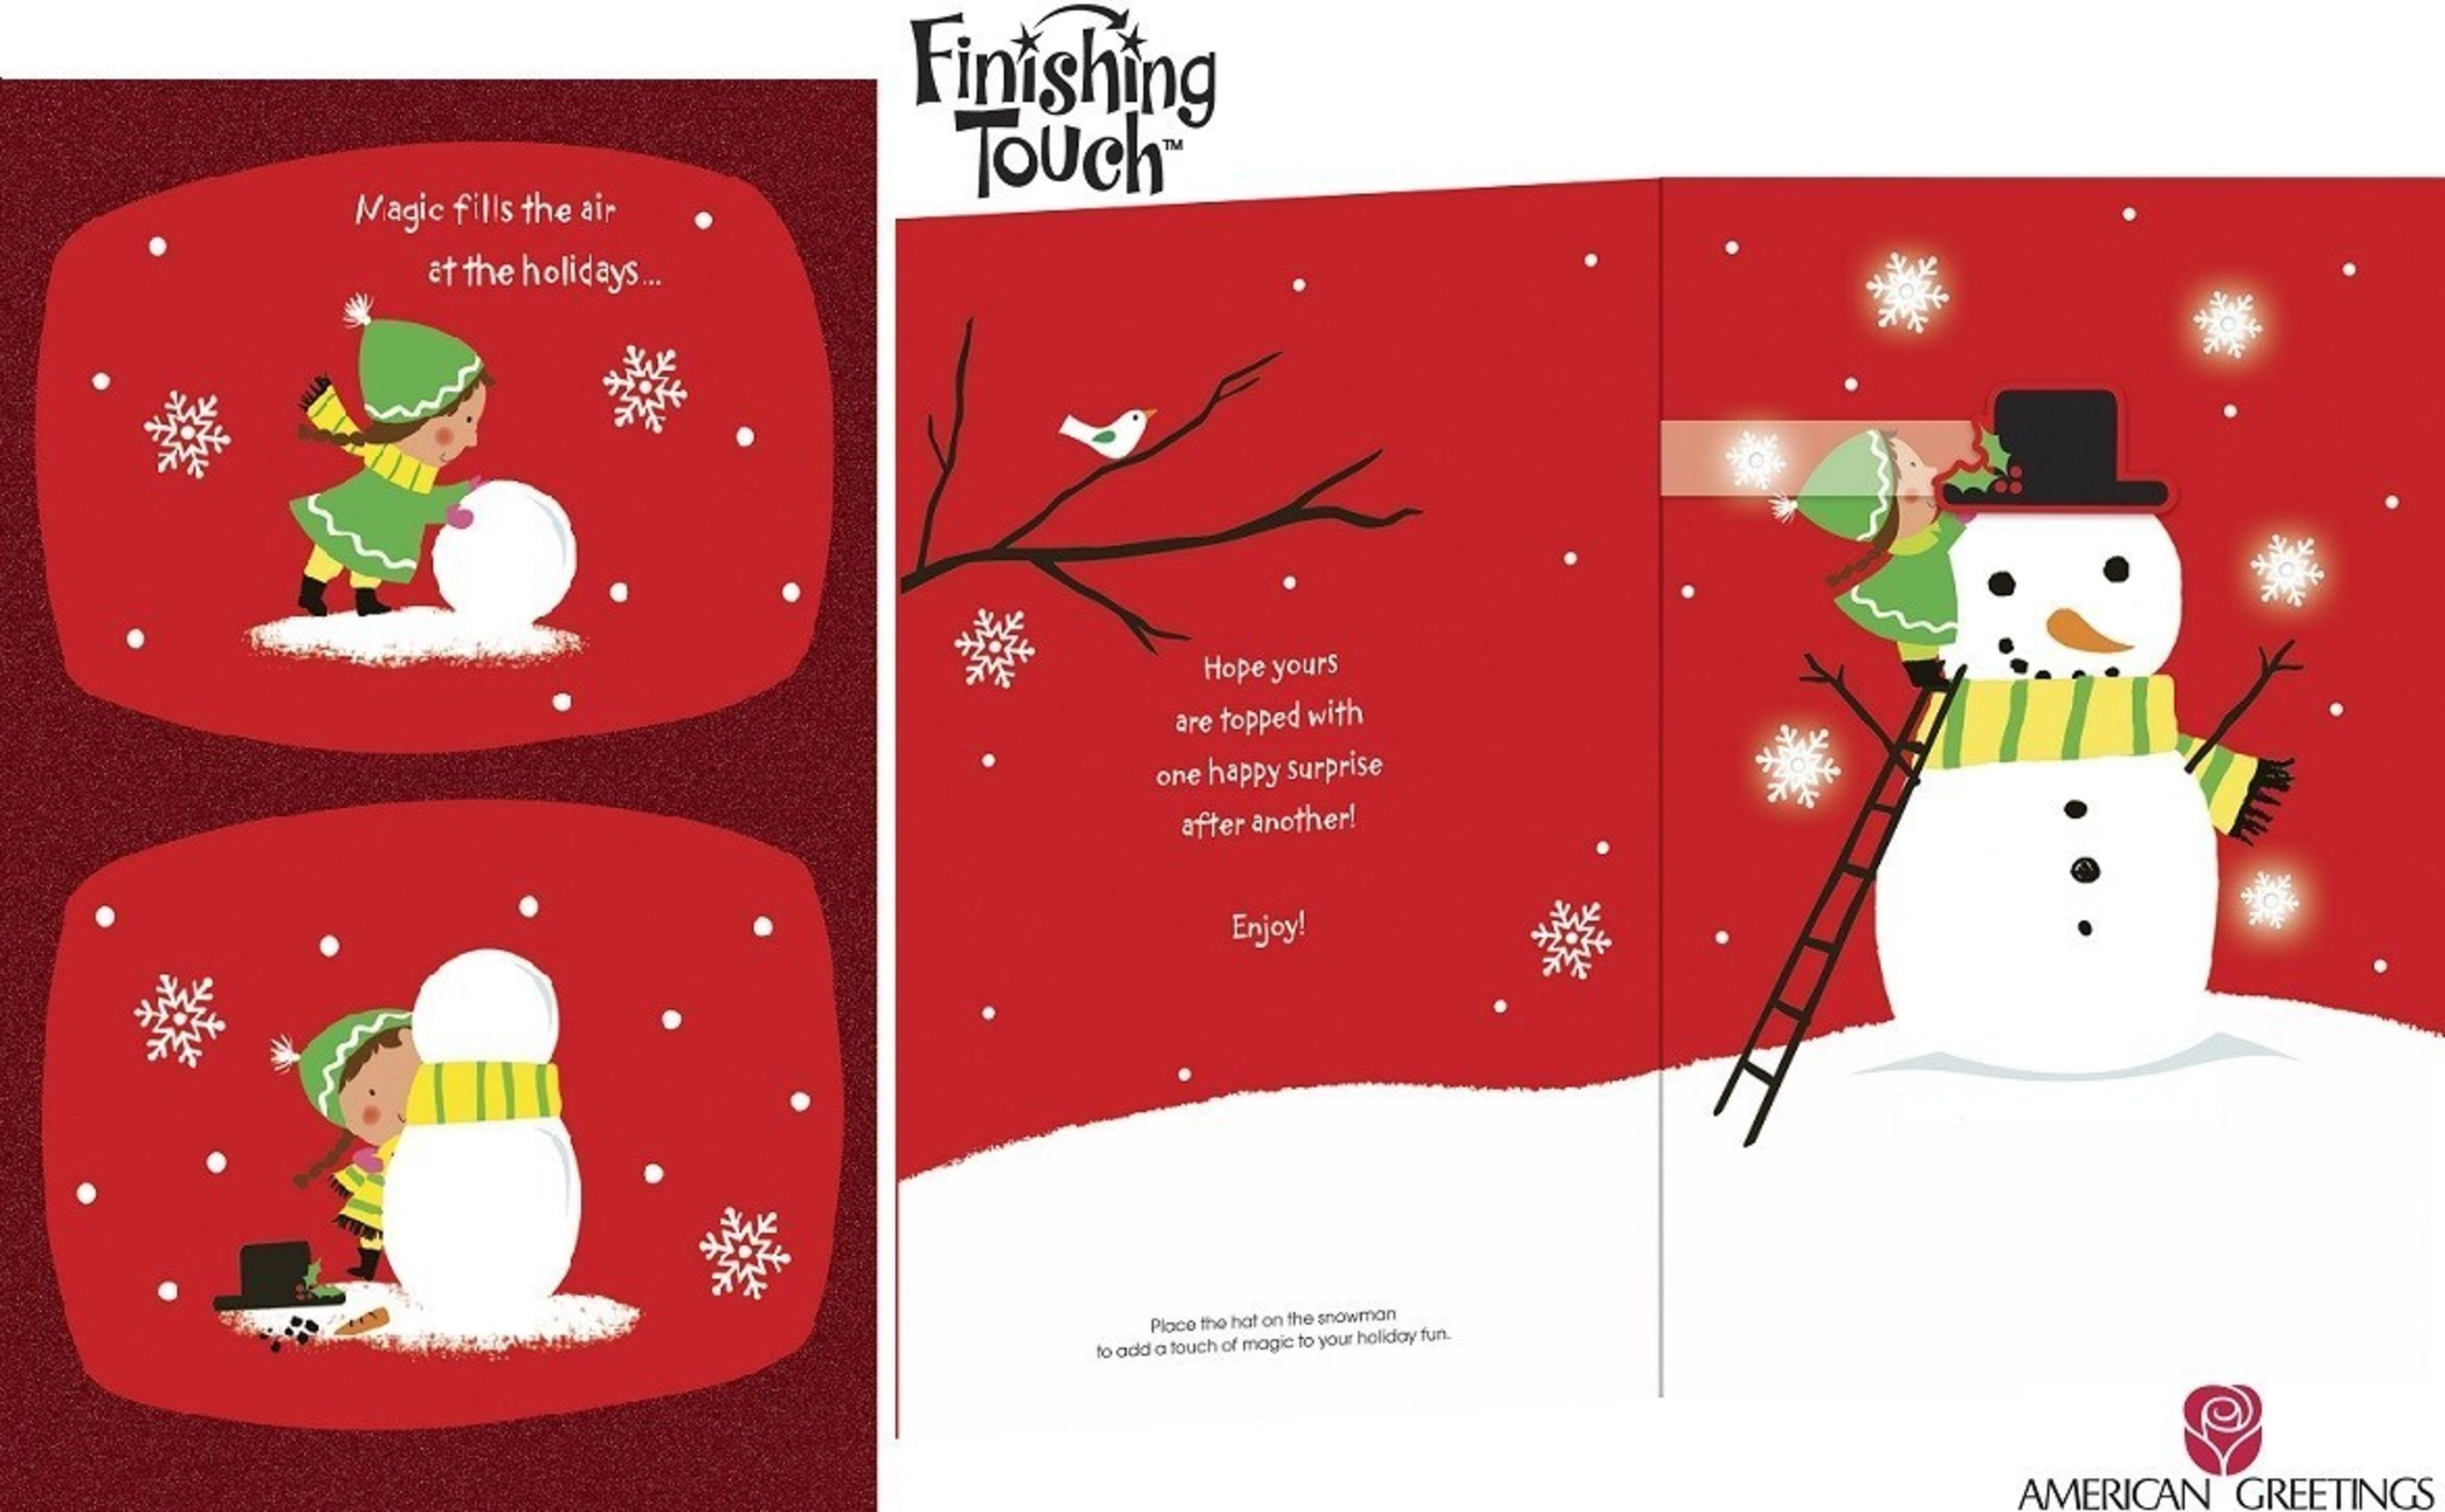 Capture The Magic Of The Season With New Finishing Touch Cards From